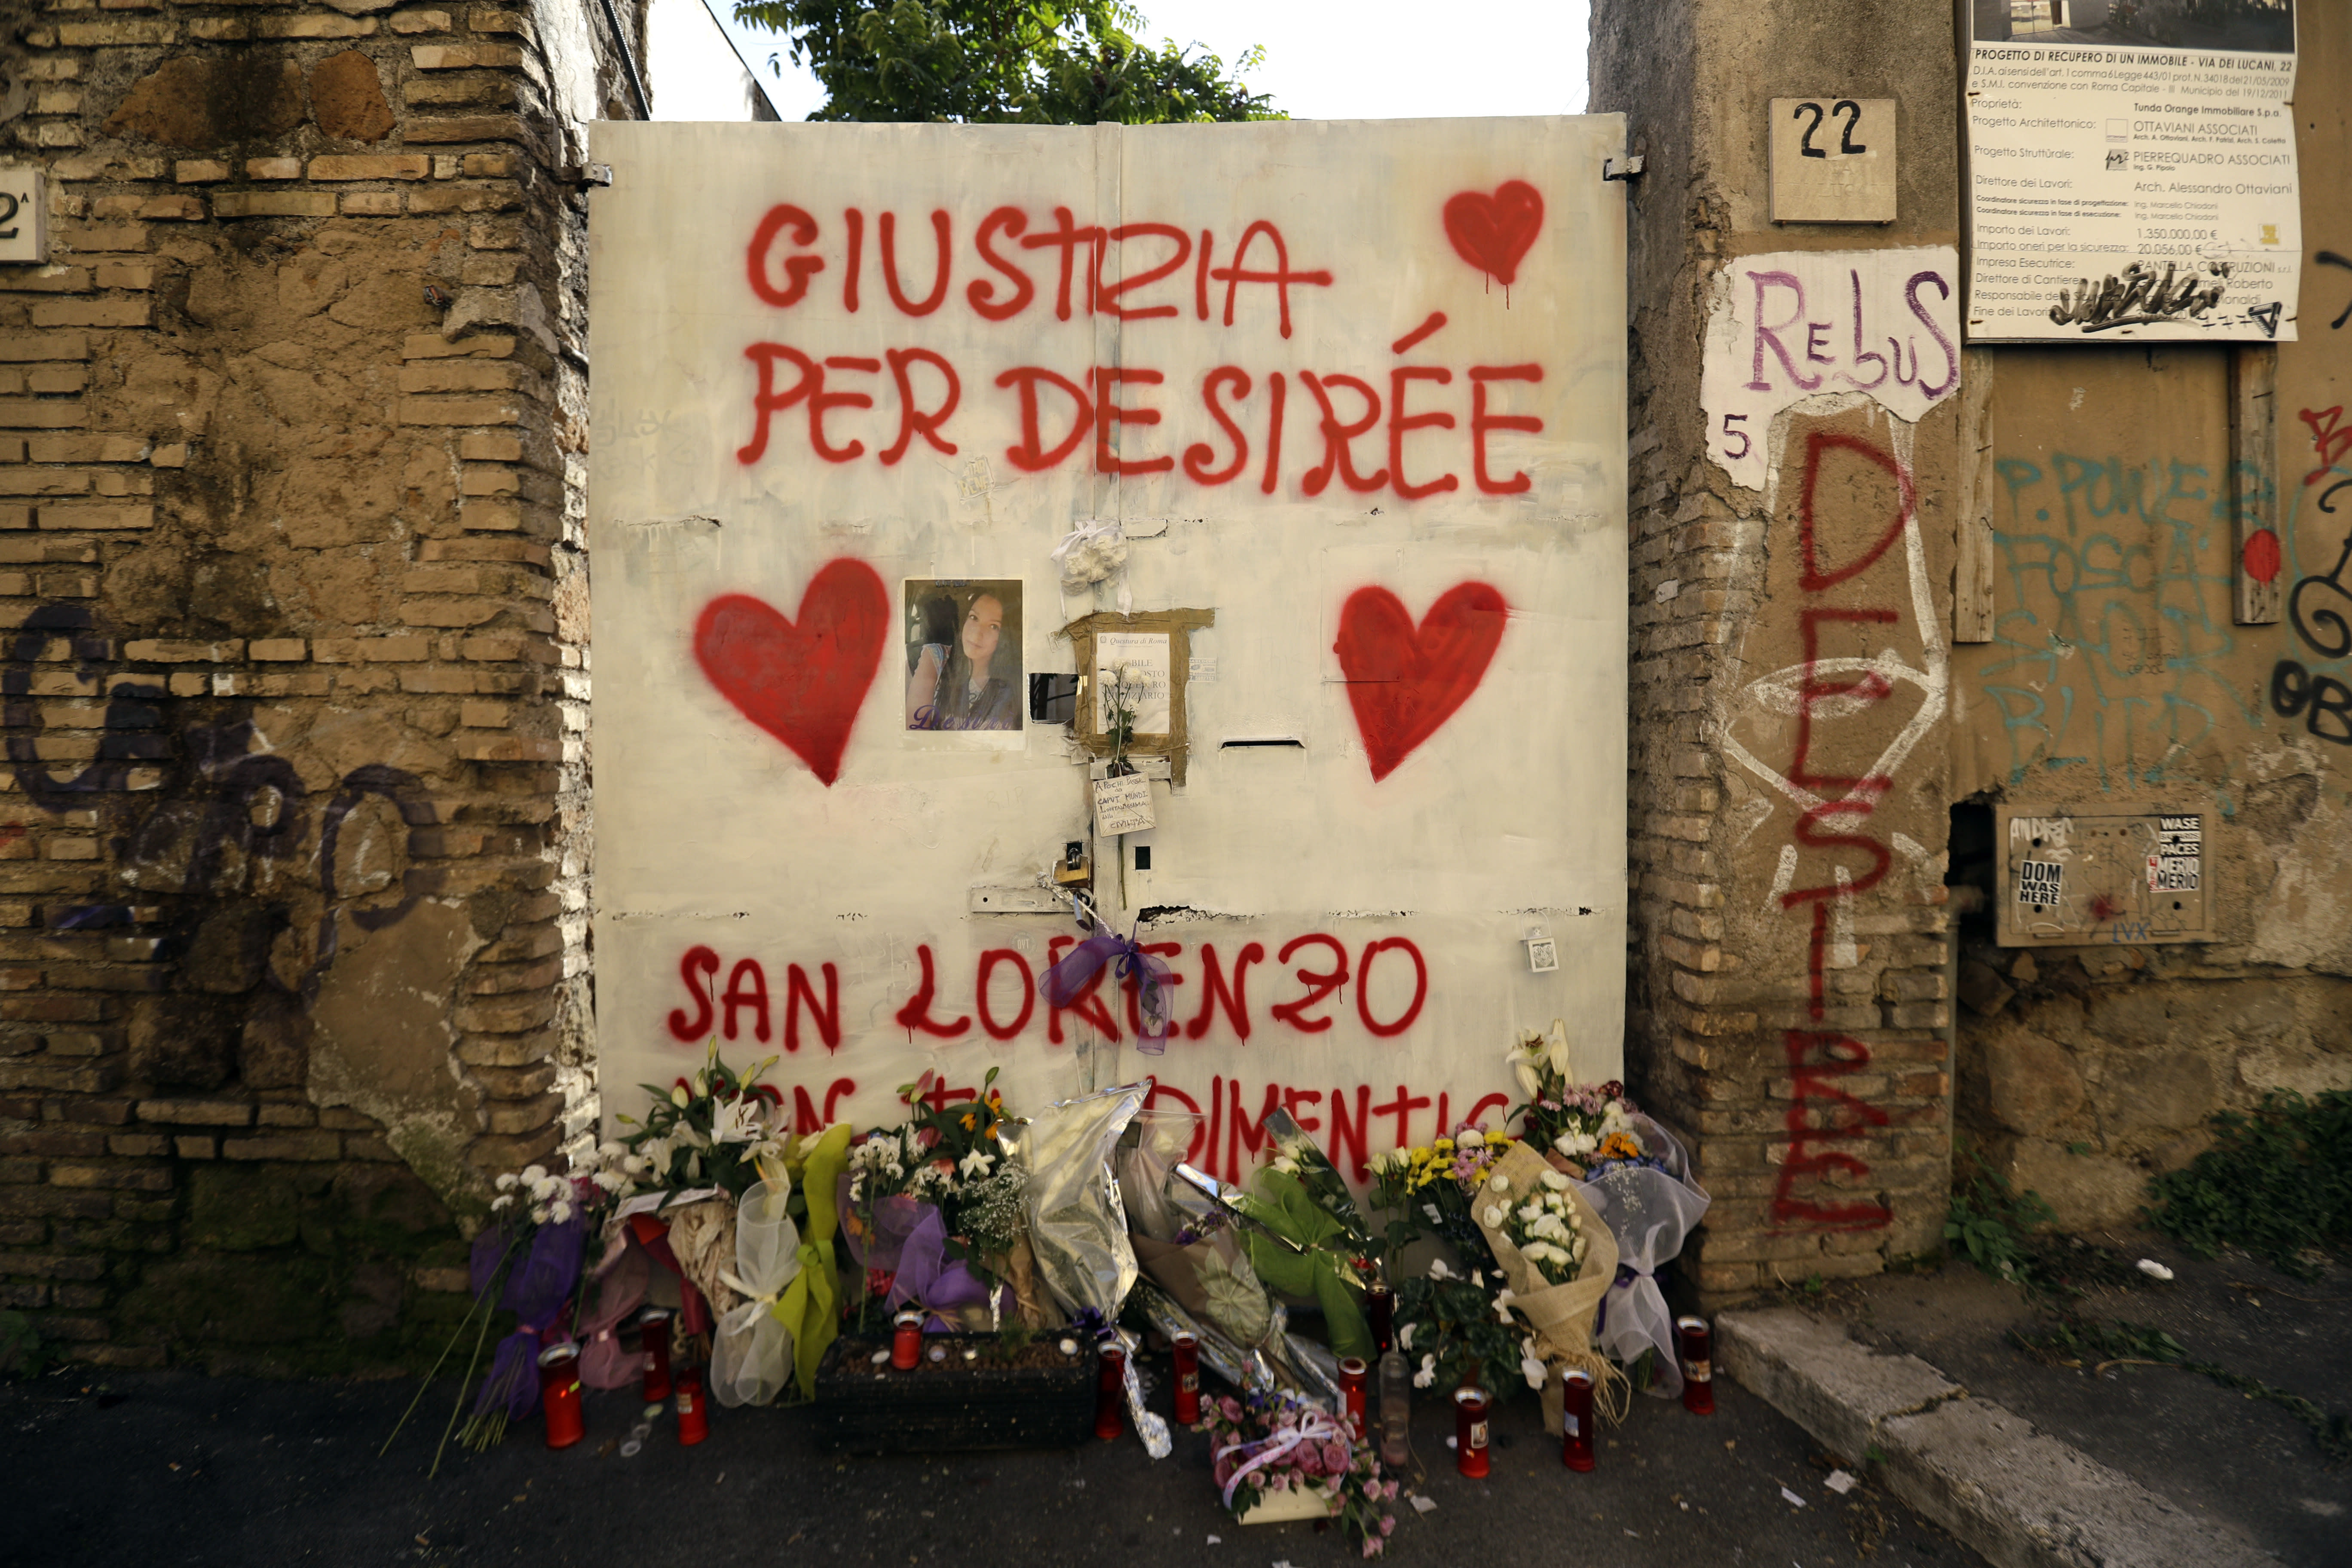 """Flowers lie by a writing on a door reading in Italian """"Justice for Desiree"""", outside the abandoned building where a 16-year-old girl was murdered, in Rome, Thursday, Oct. 25, 2018. Italian police have detained three suspects, all immigrants, in the slaying of a teenage girl who was drugged, gang-raped and left in an abandoned building known as a center for drug dealing in Rome. Authorities said Thursday that the three suspects, two Senegalese citizens and one Nigerian, were being held on suspicion of murder, group sexual assault and handing out drugs in the death late last week of 16-year-old Desiree Mariottini. (AP Photo/Gregorio Borgia)"""